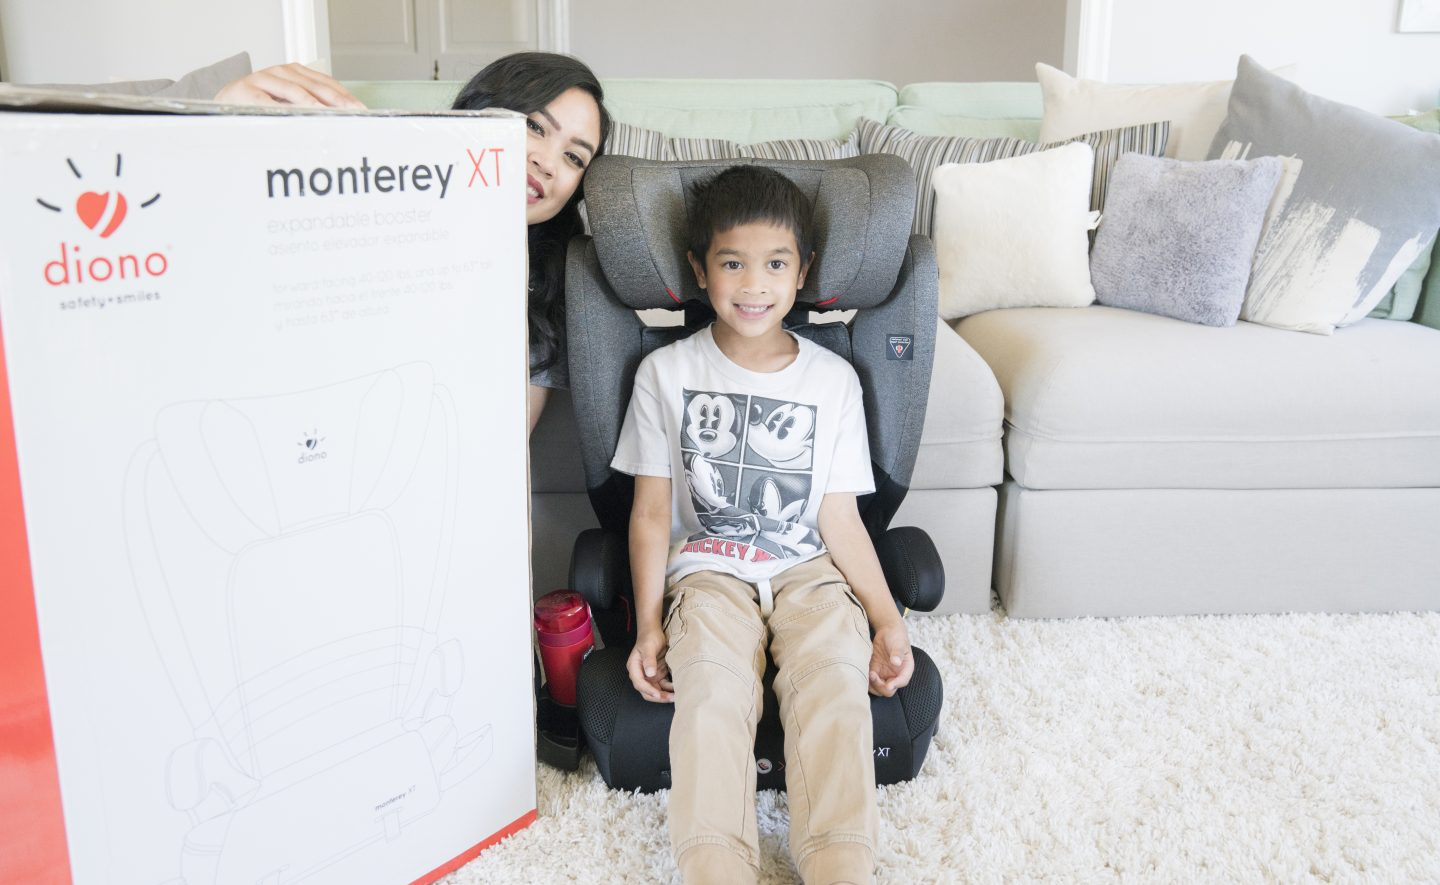 Diono Monterey XT Booster Seat Review